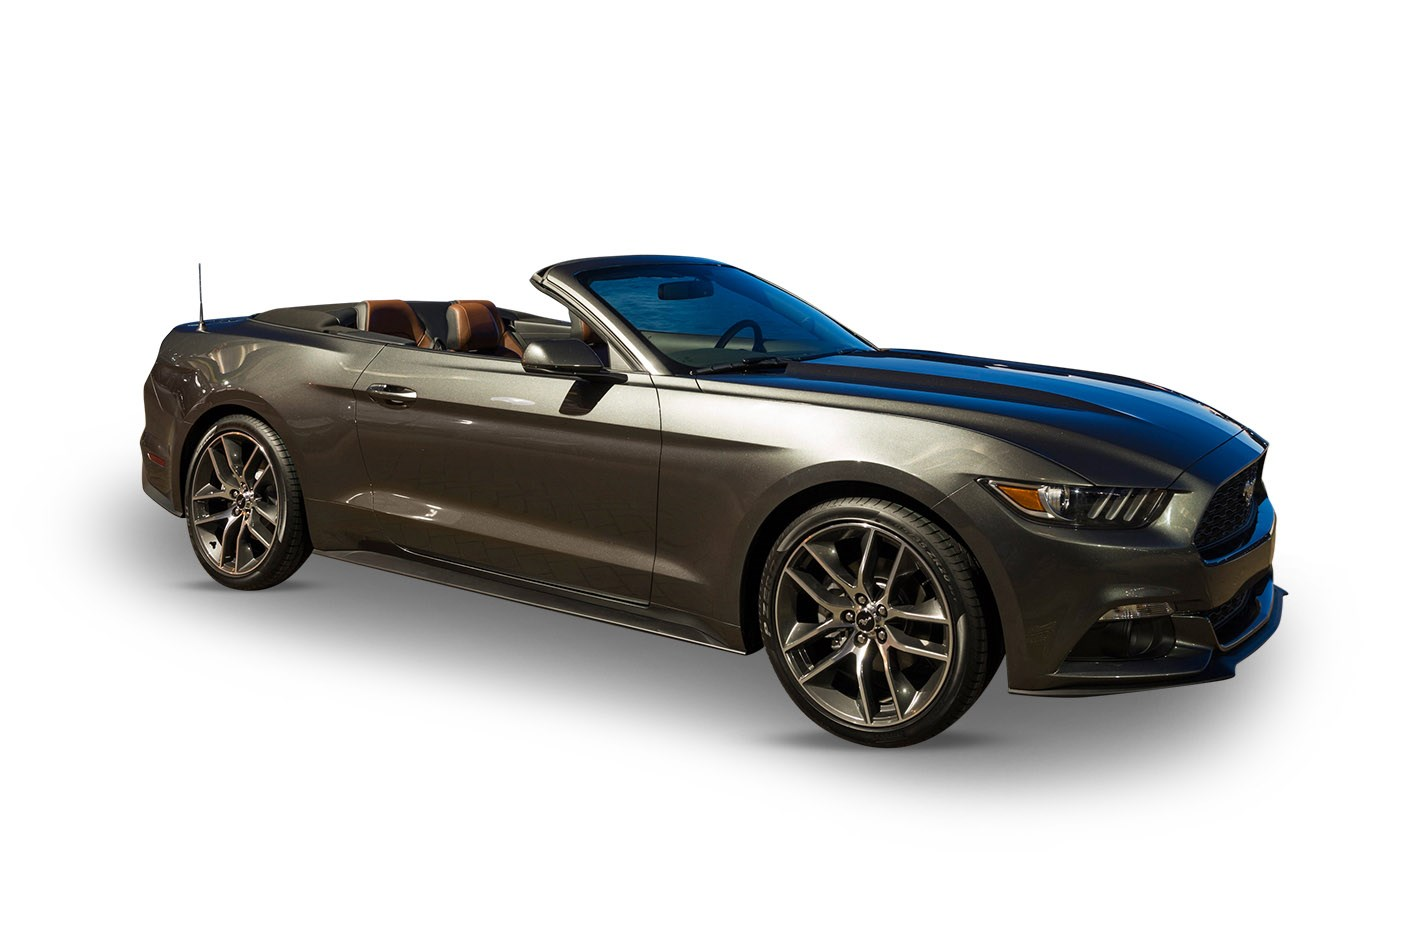 2018 ford mustang gt 5 0 v8 automatic 5 0l 2d convertible